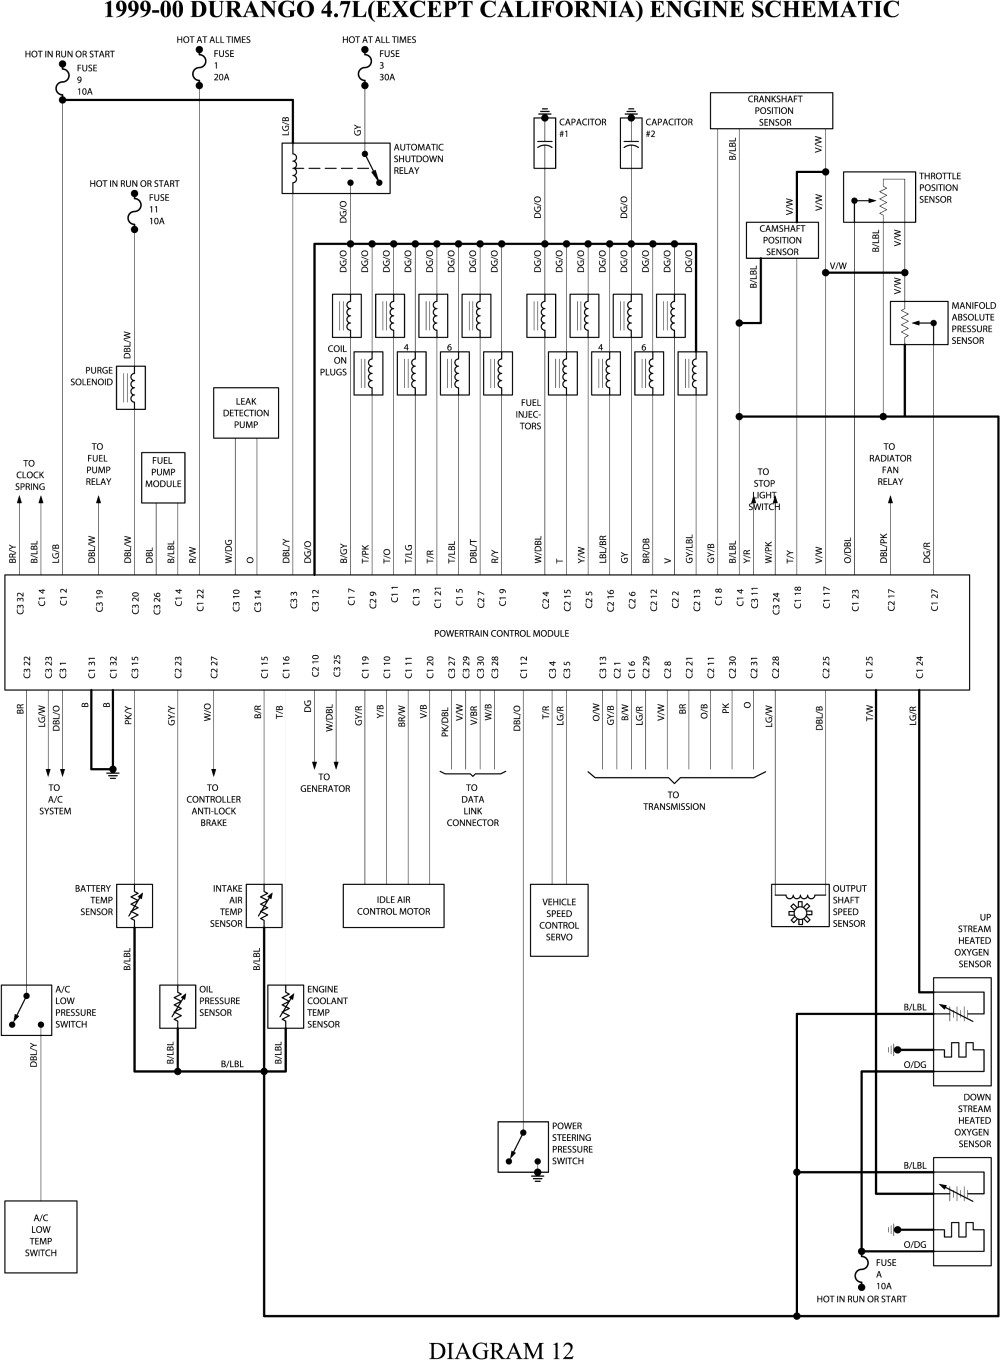 2002 dodge dakota pcm wiring diagram Collection-2001 Dodge Ram 1500 Pcm Wiring Diagram 15-f